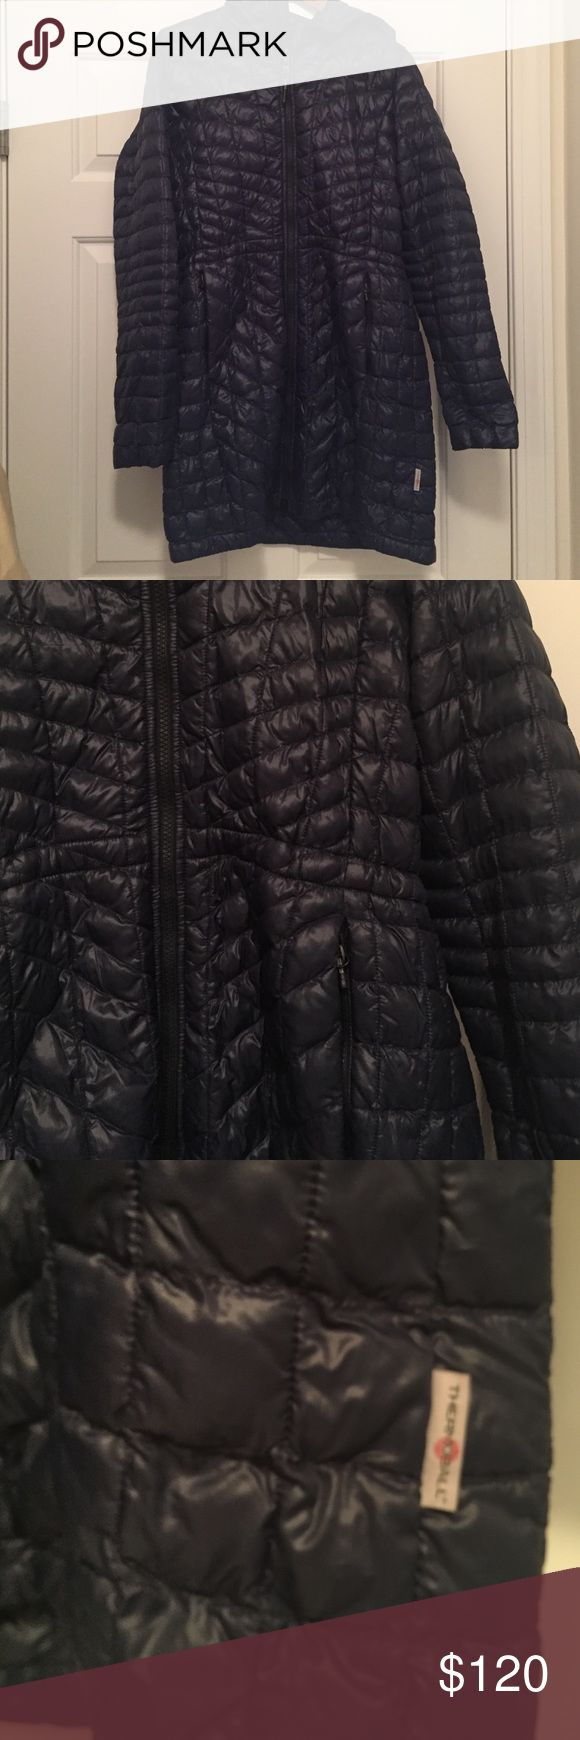 North Face Thermoball winter coat North Face Thermoball winter coat, very thin but keeps you so warm!! North Face Jackets & Coats Puffers